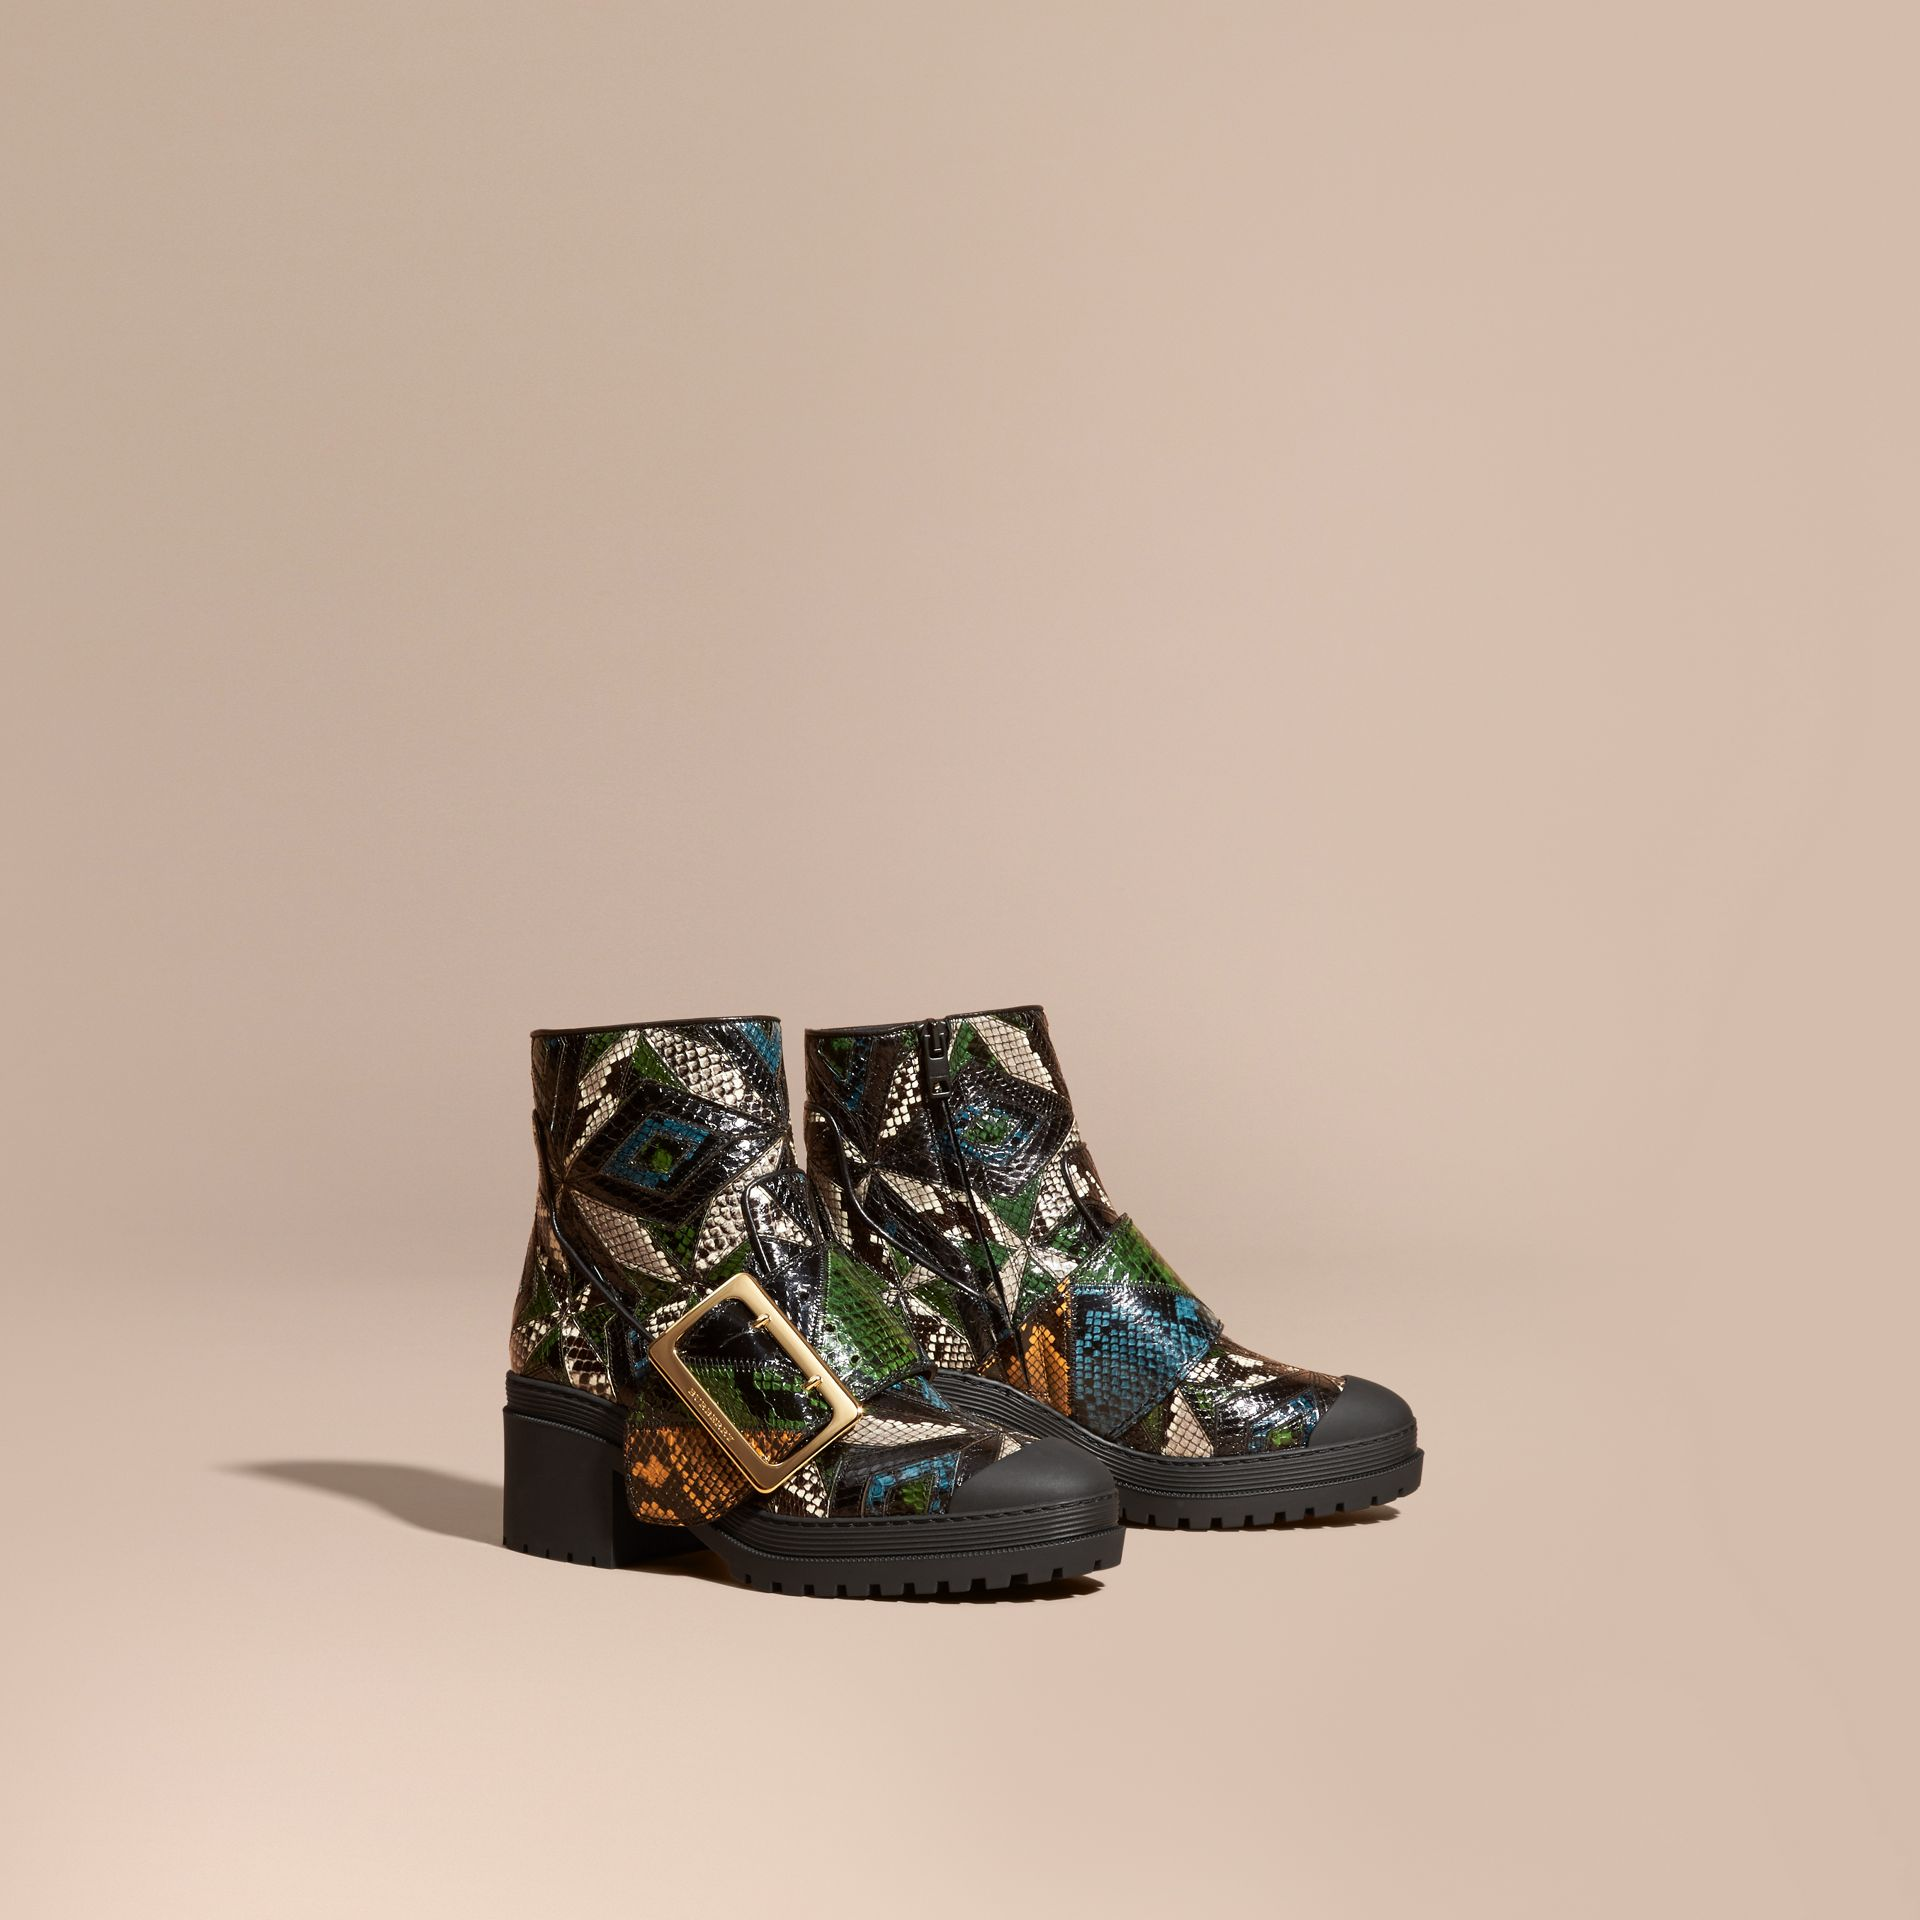 Black/mineral blue The Buckle Boot in Snakeskin - gallery image 1